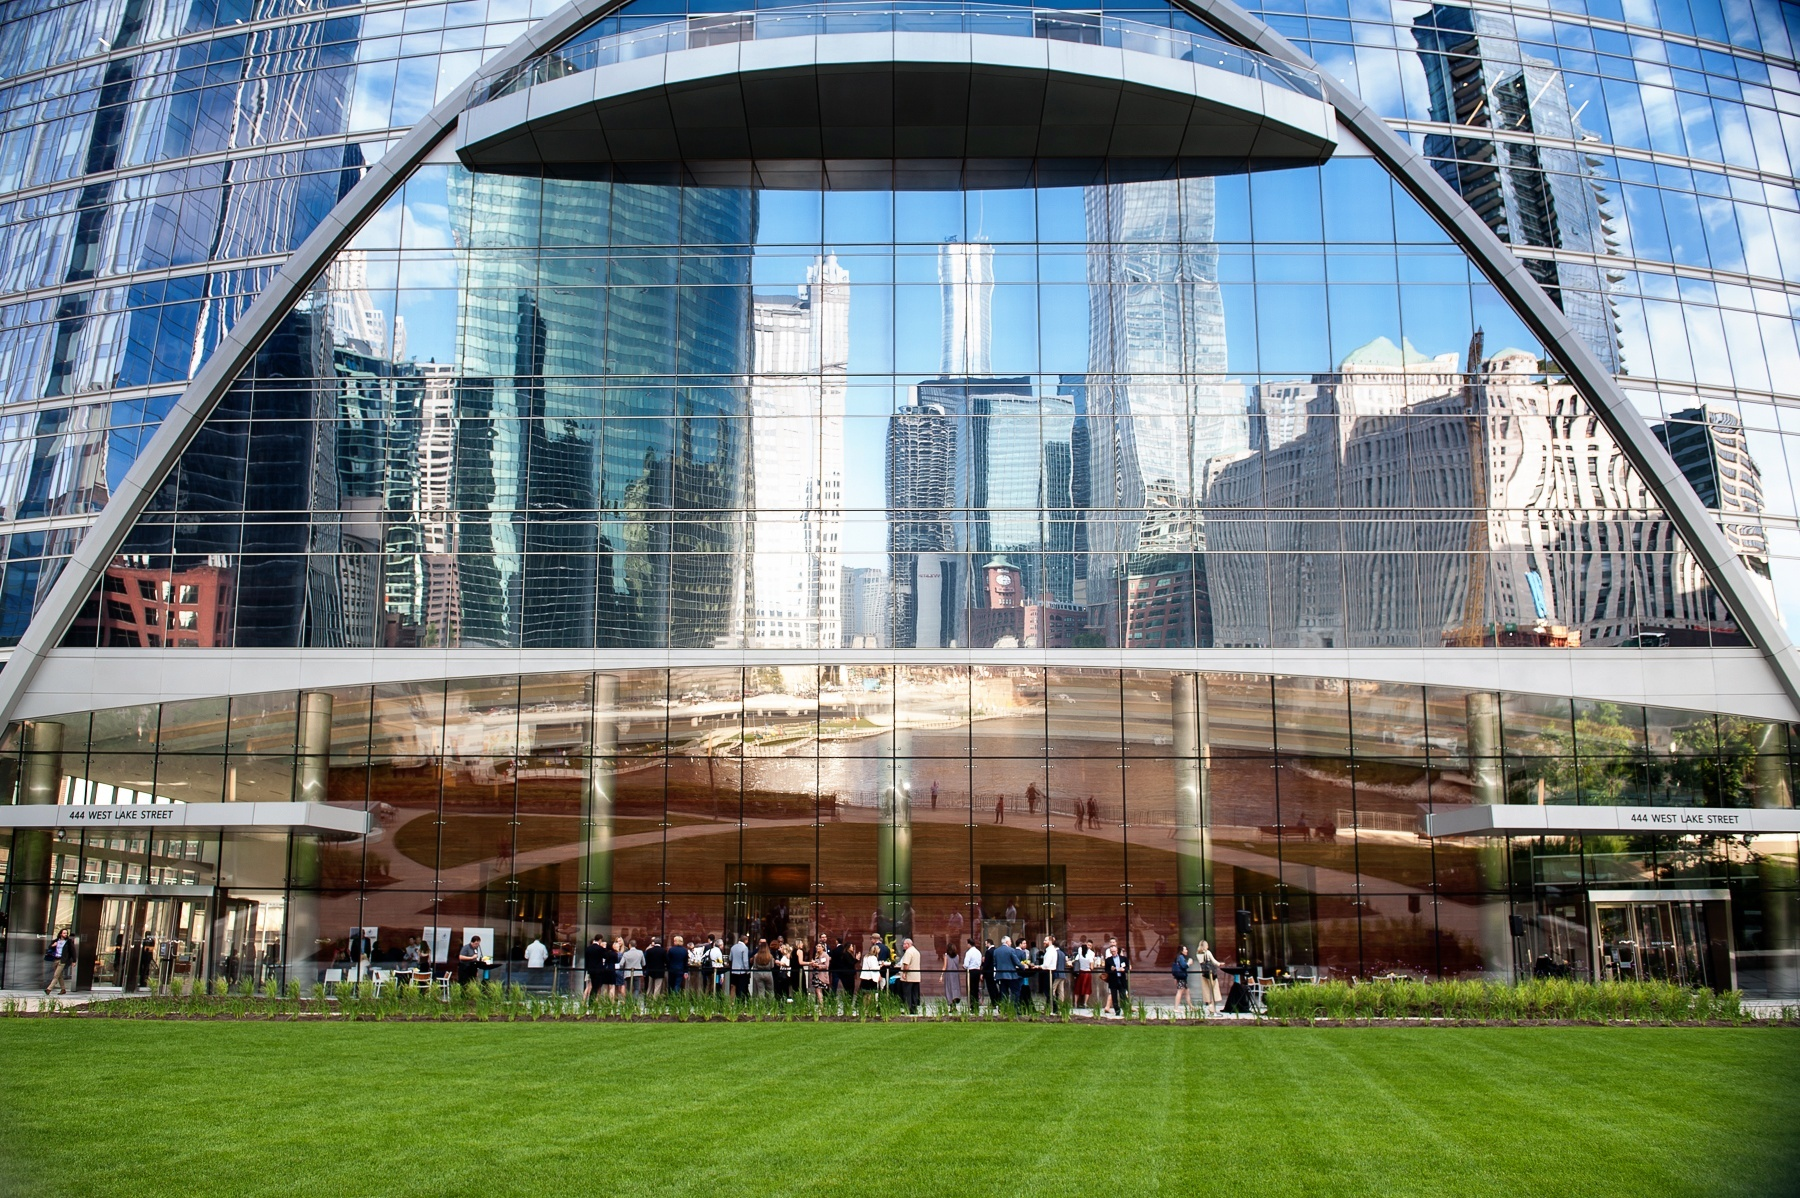 WiredScore's Chicago Launch | The event took place on the plaza of Hines' River Point (444 W Lake)